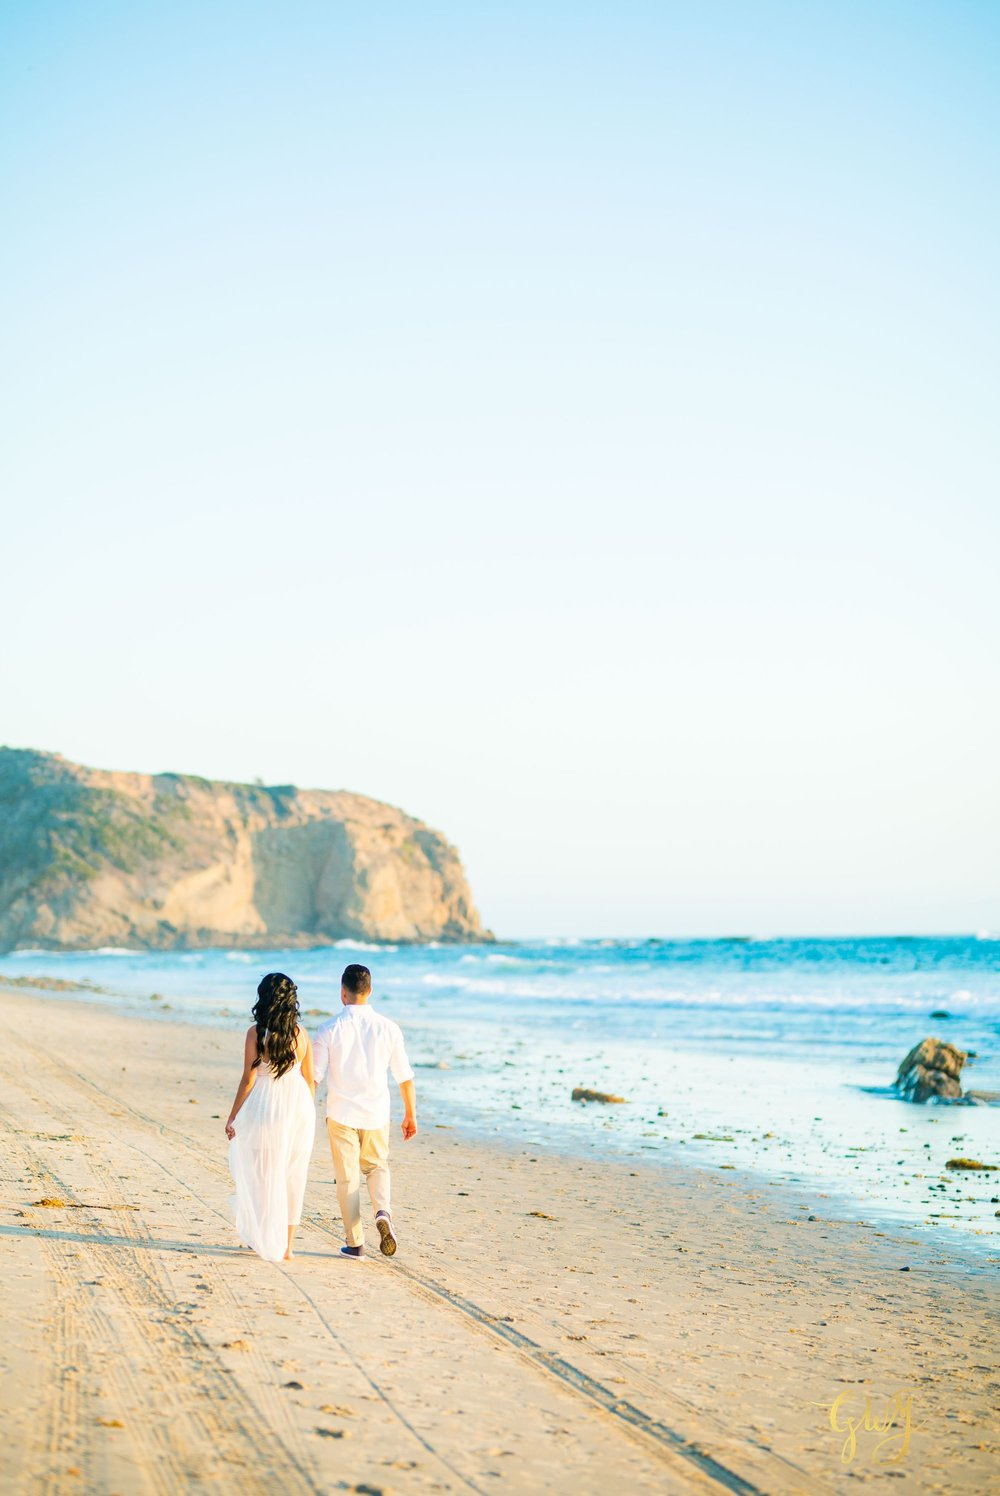 Angela + Drew Mission San Juan Capistrano Strands Beach Sunset Engagement 10.jpg